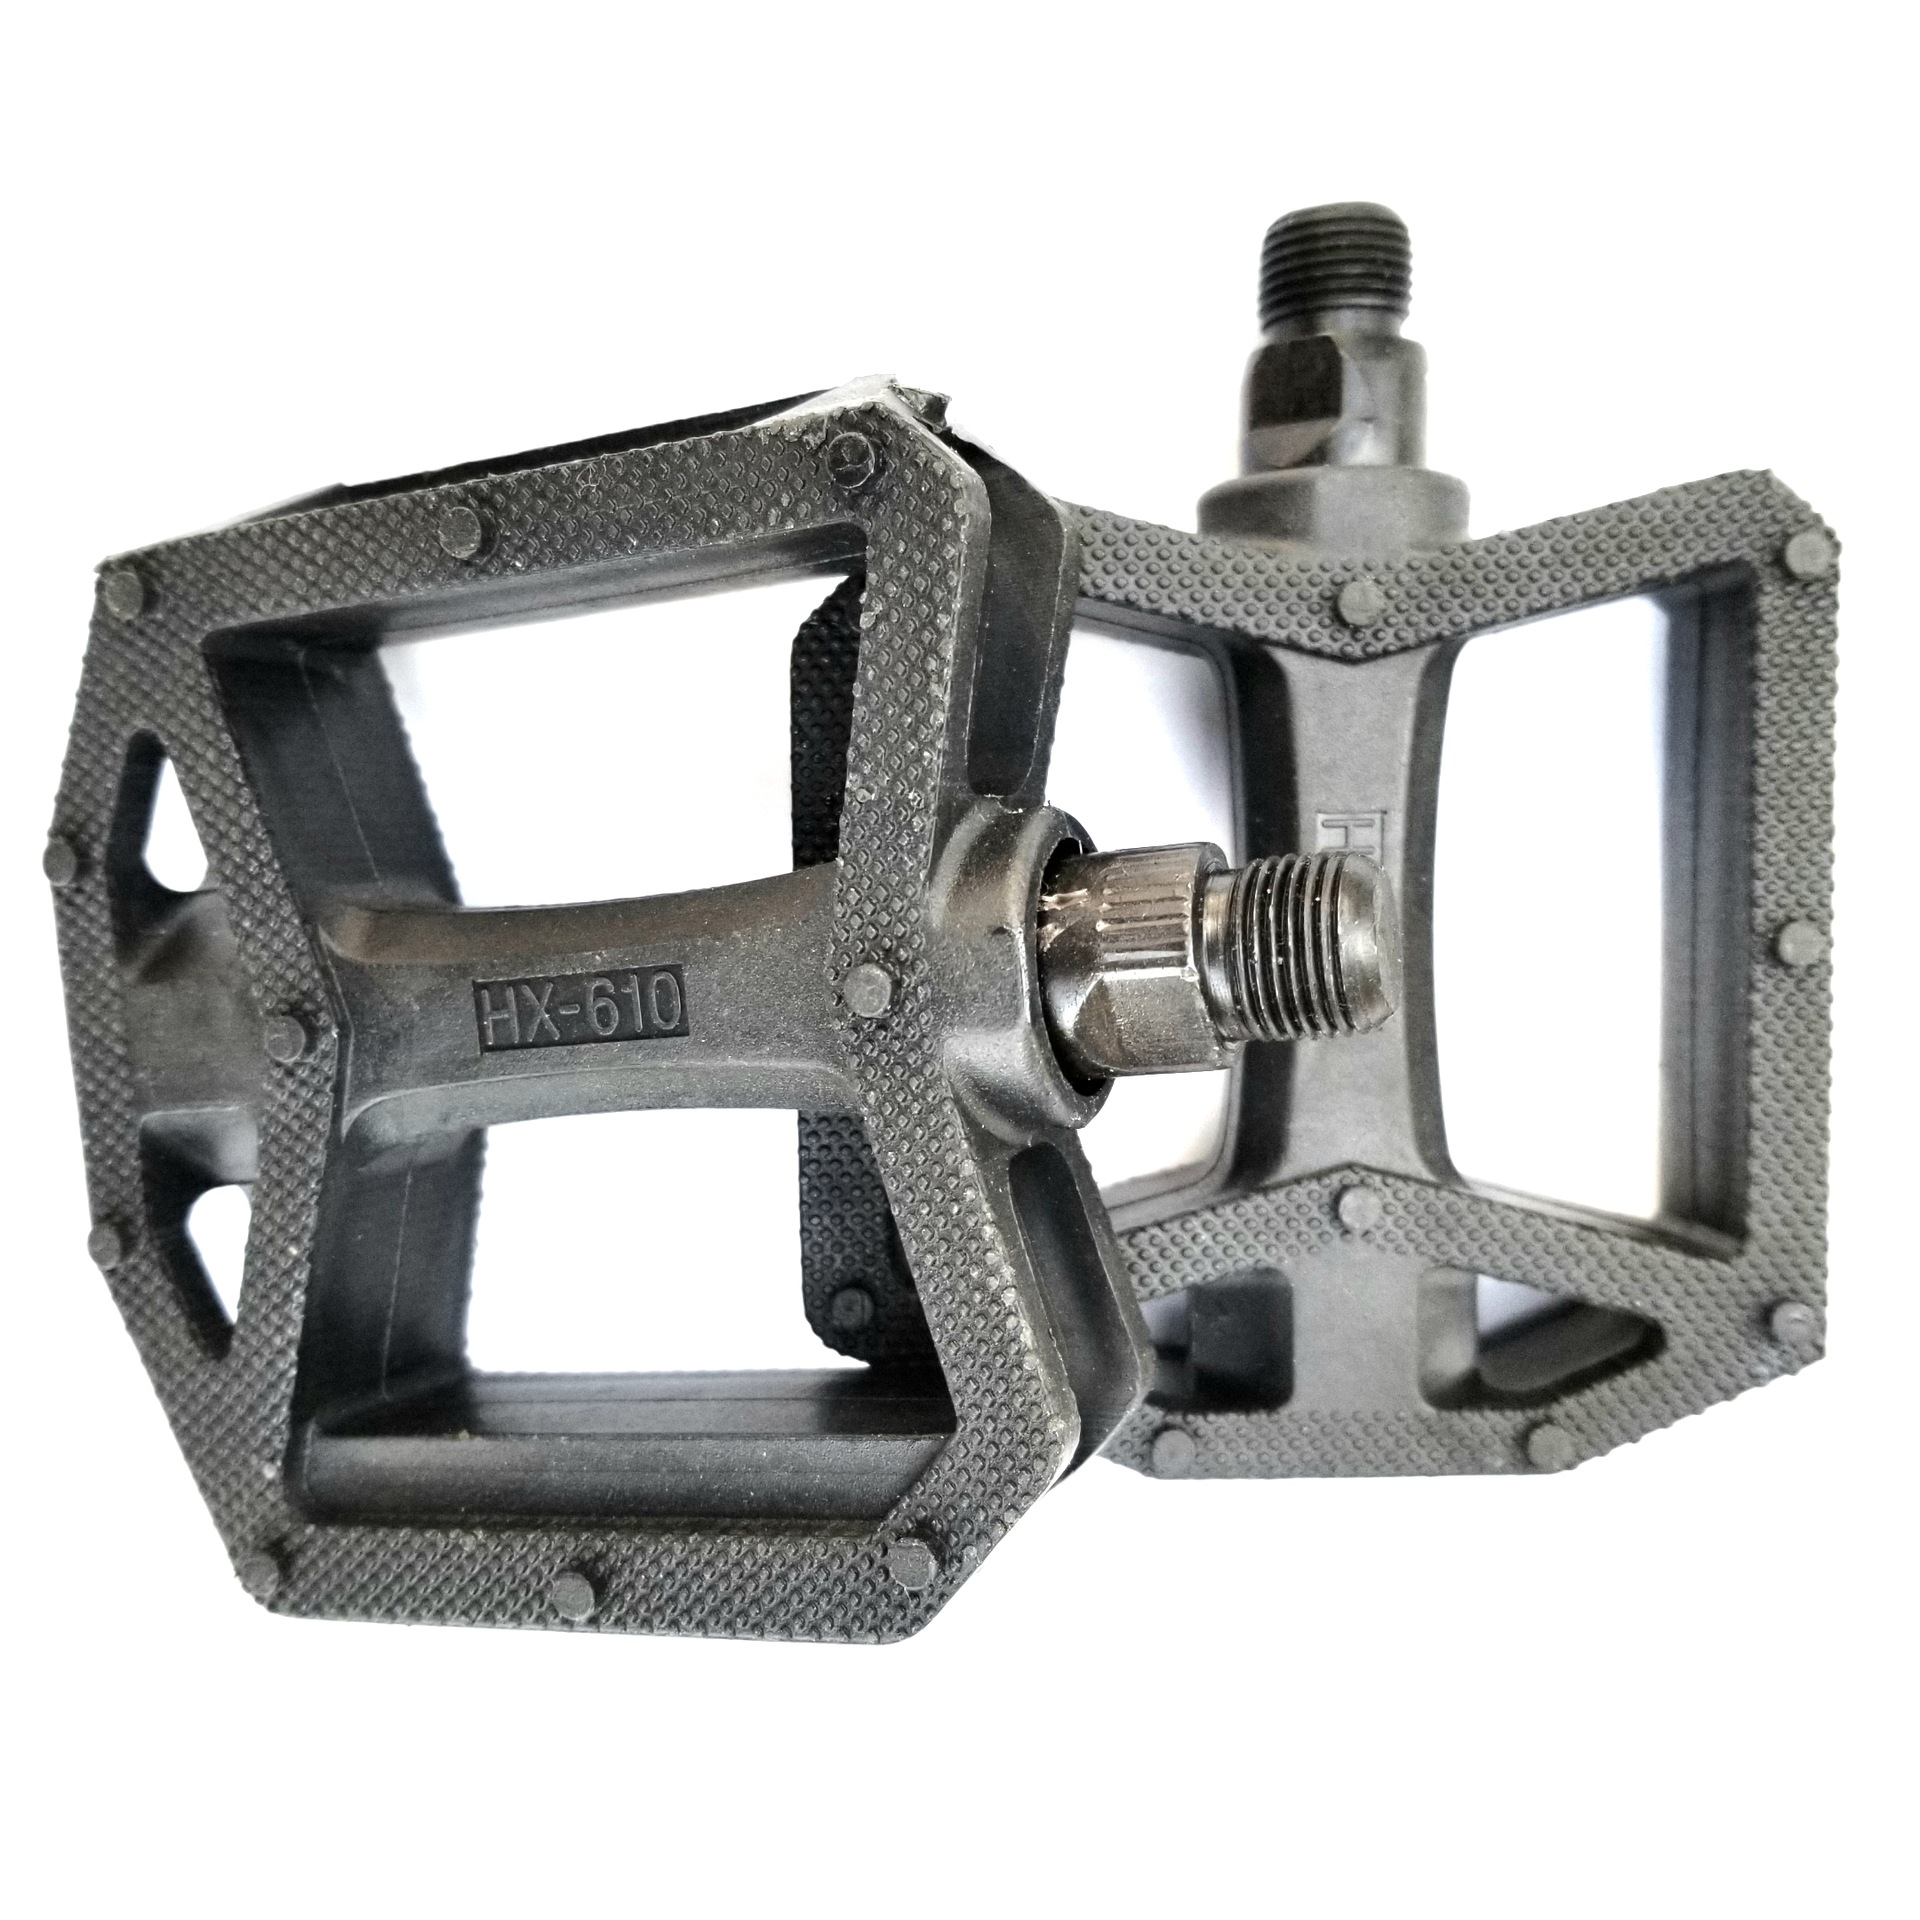 Solidified Plastic Foot Pedal for Basic Bicycle Accessories